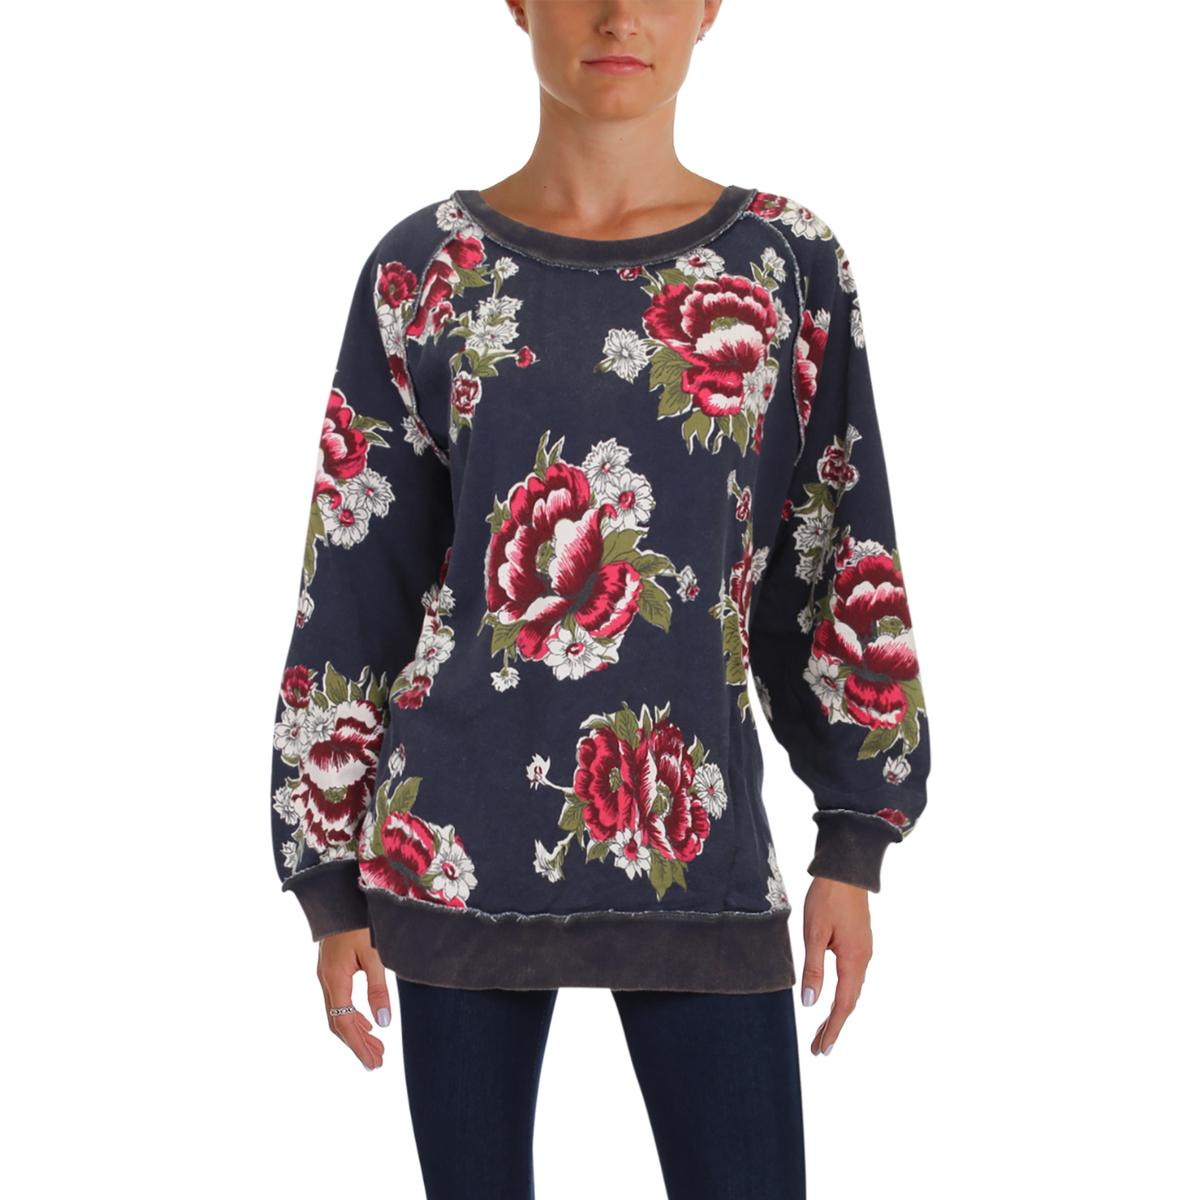 e551b0a39a7 Free People Womens Floral Raglan Casual Sweatshirt Top BHFO 7904 | eBay